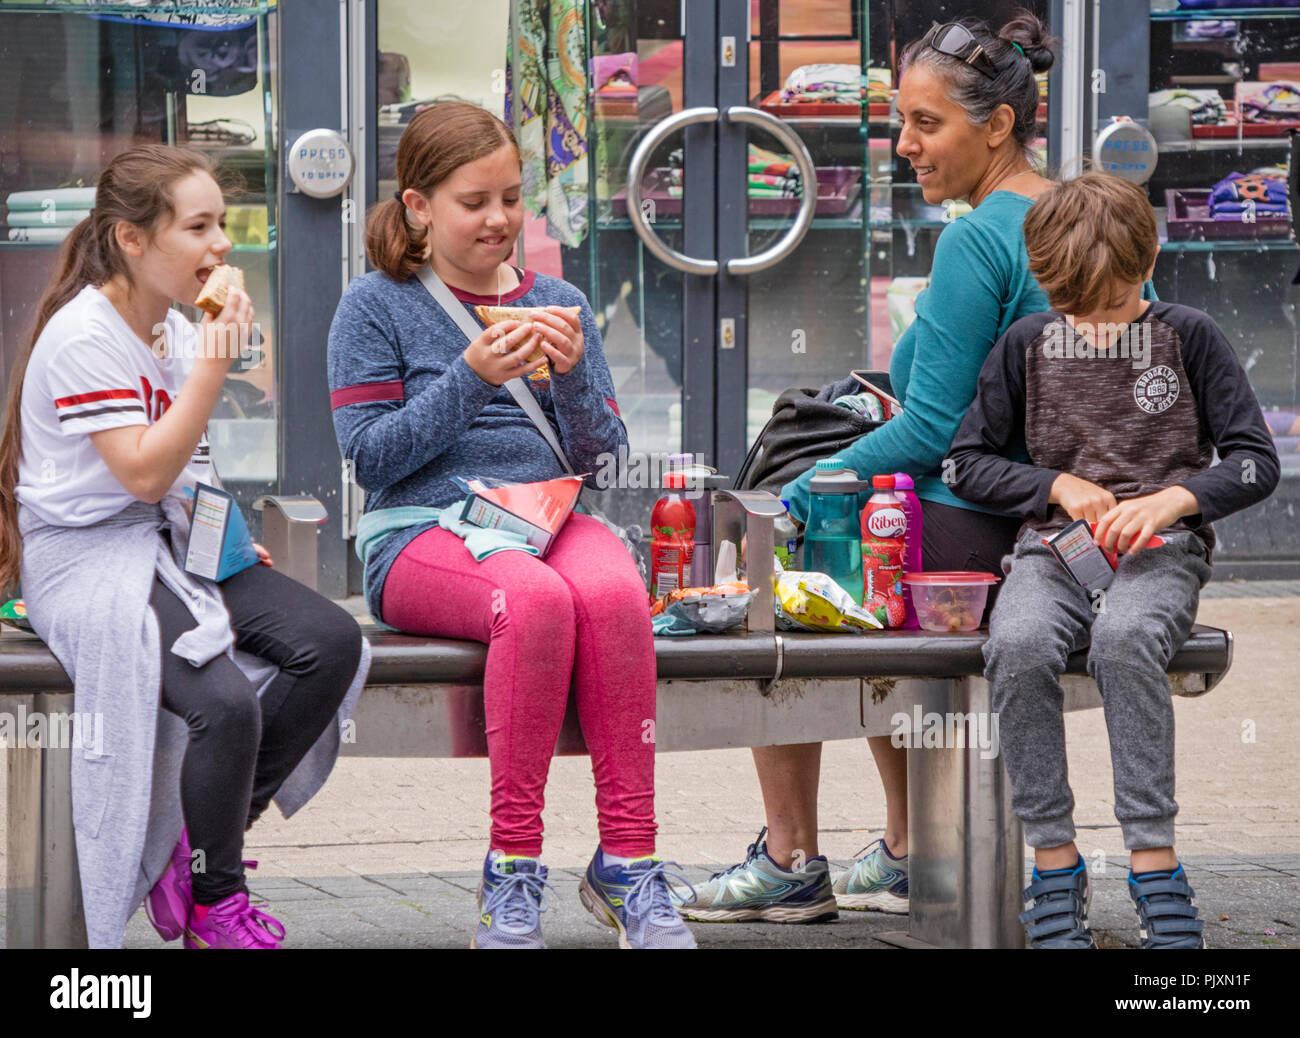 Children eating shop bought fast food while shopping in Bristol, England, UK - Stock Image